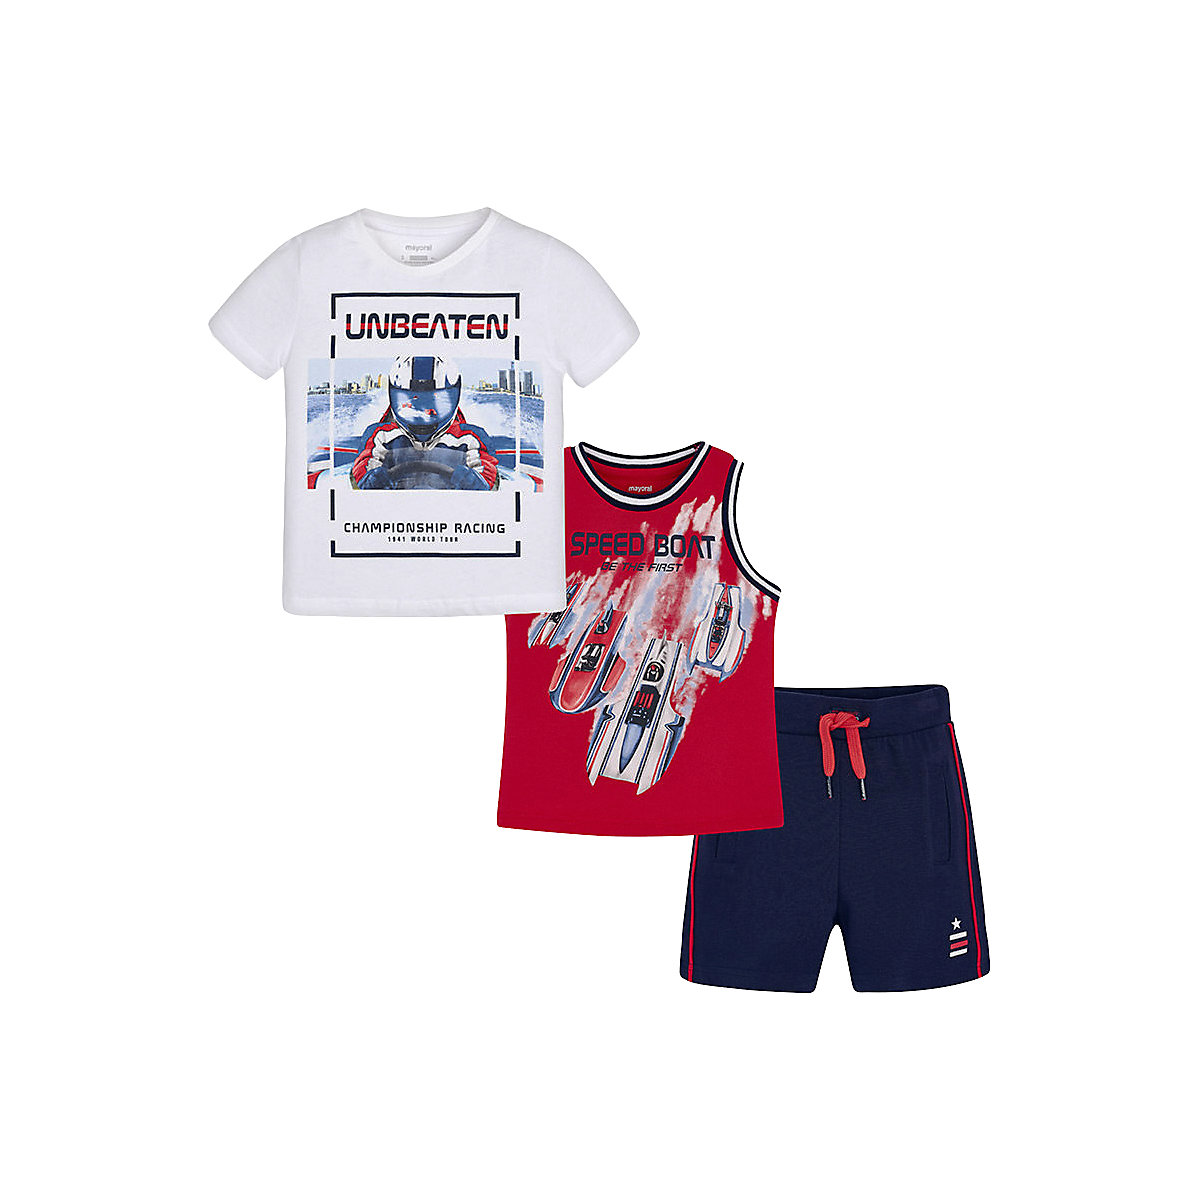 Children's Sets MAYORAL 10678594 Set Of Clothes For Kids Breeches T-shirt Legs Shirt Shorts Girls And Boys